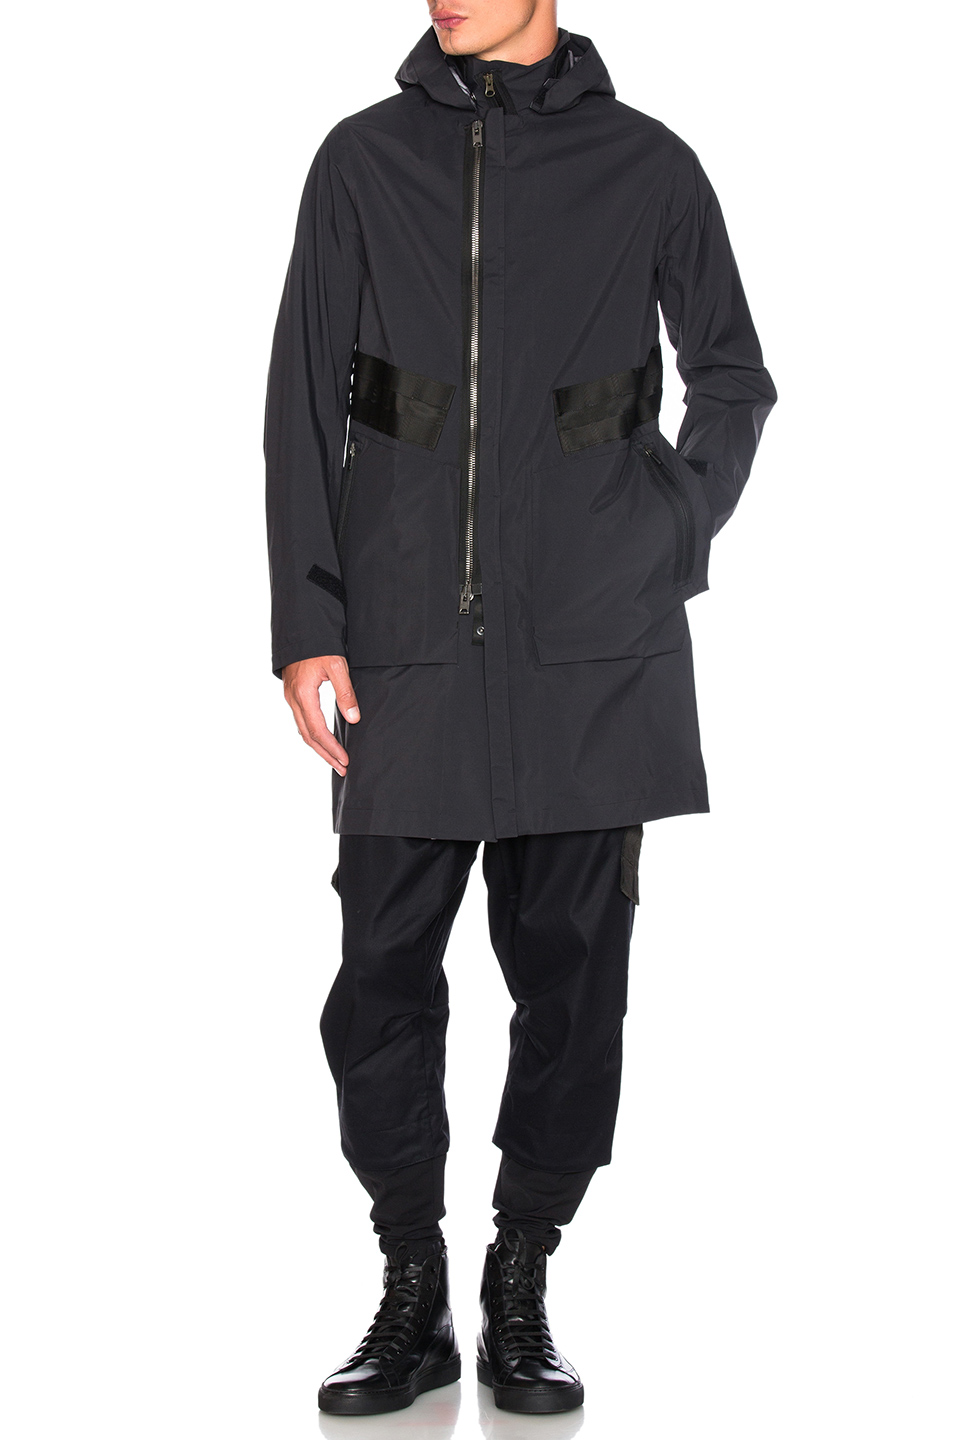 Acronym 3L Gore-Tex Interlops Coat in Black